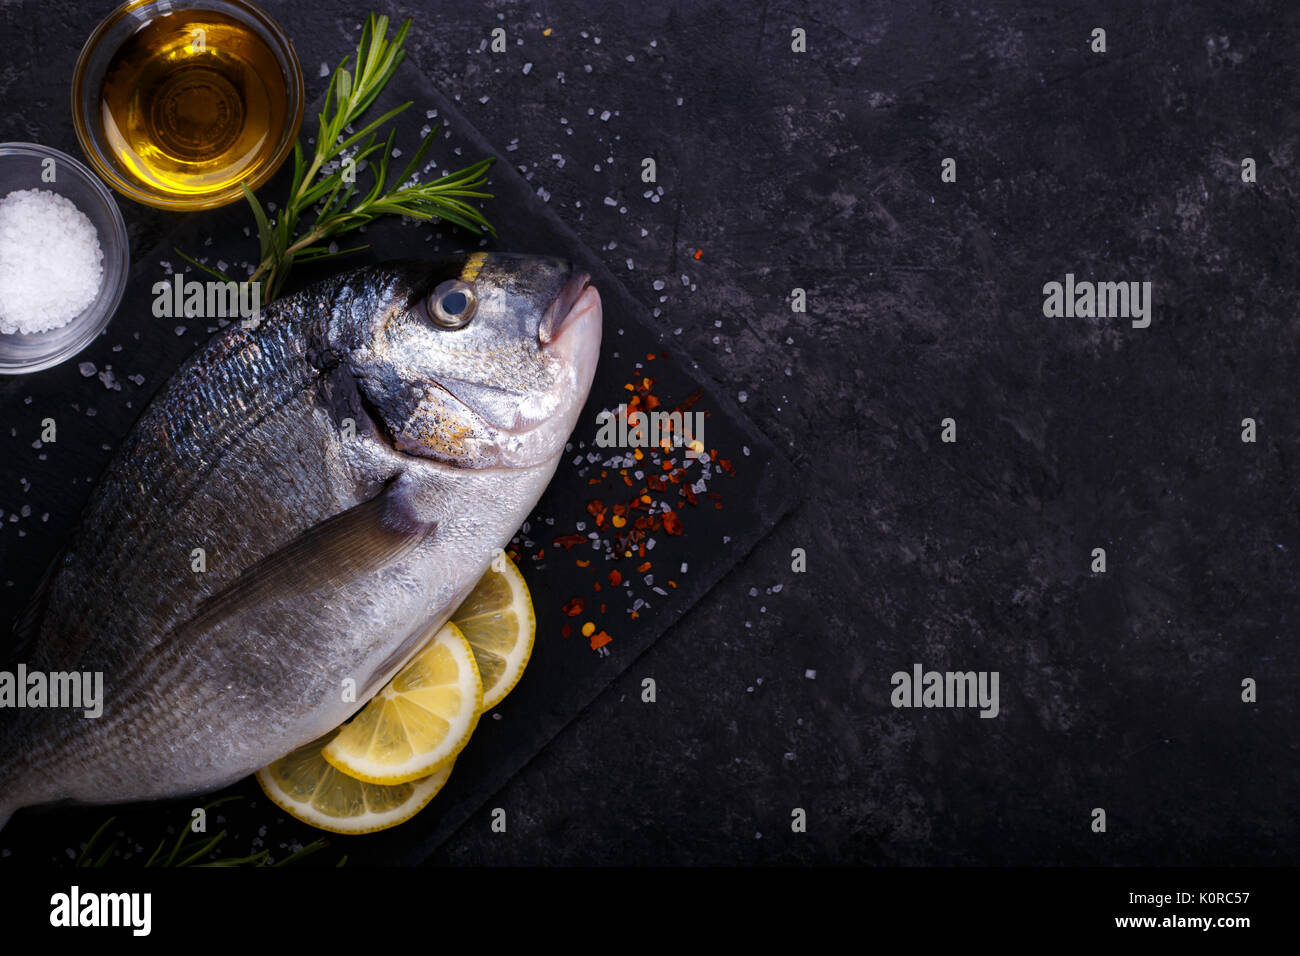 Fresh raw sea bream fish with lemon slices, salt, rosemary and olive oil on black slate background. Healthy food concept, top view, copy space - Stock Image